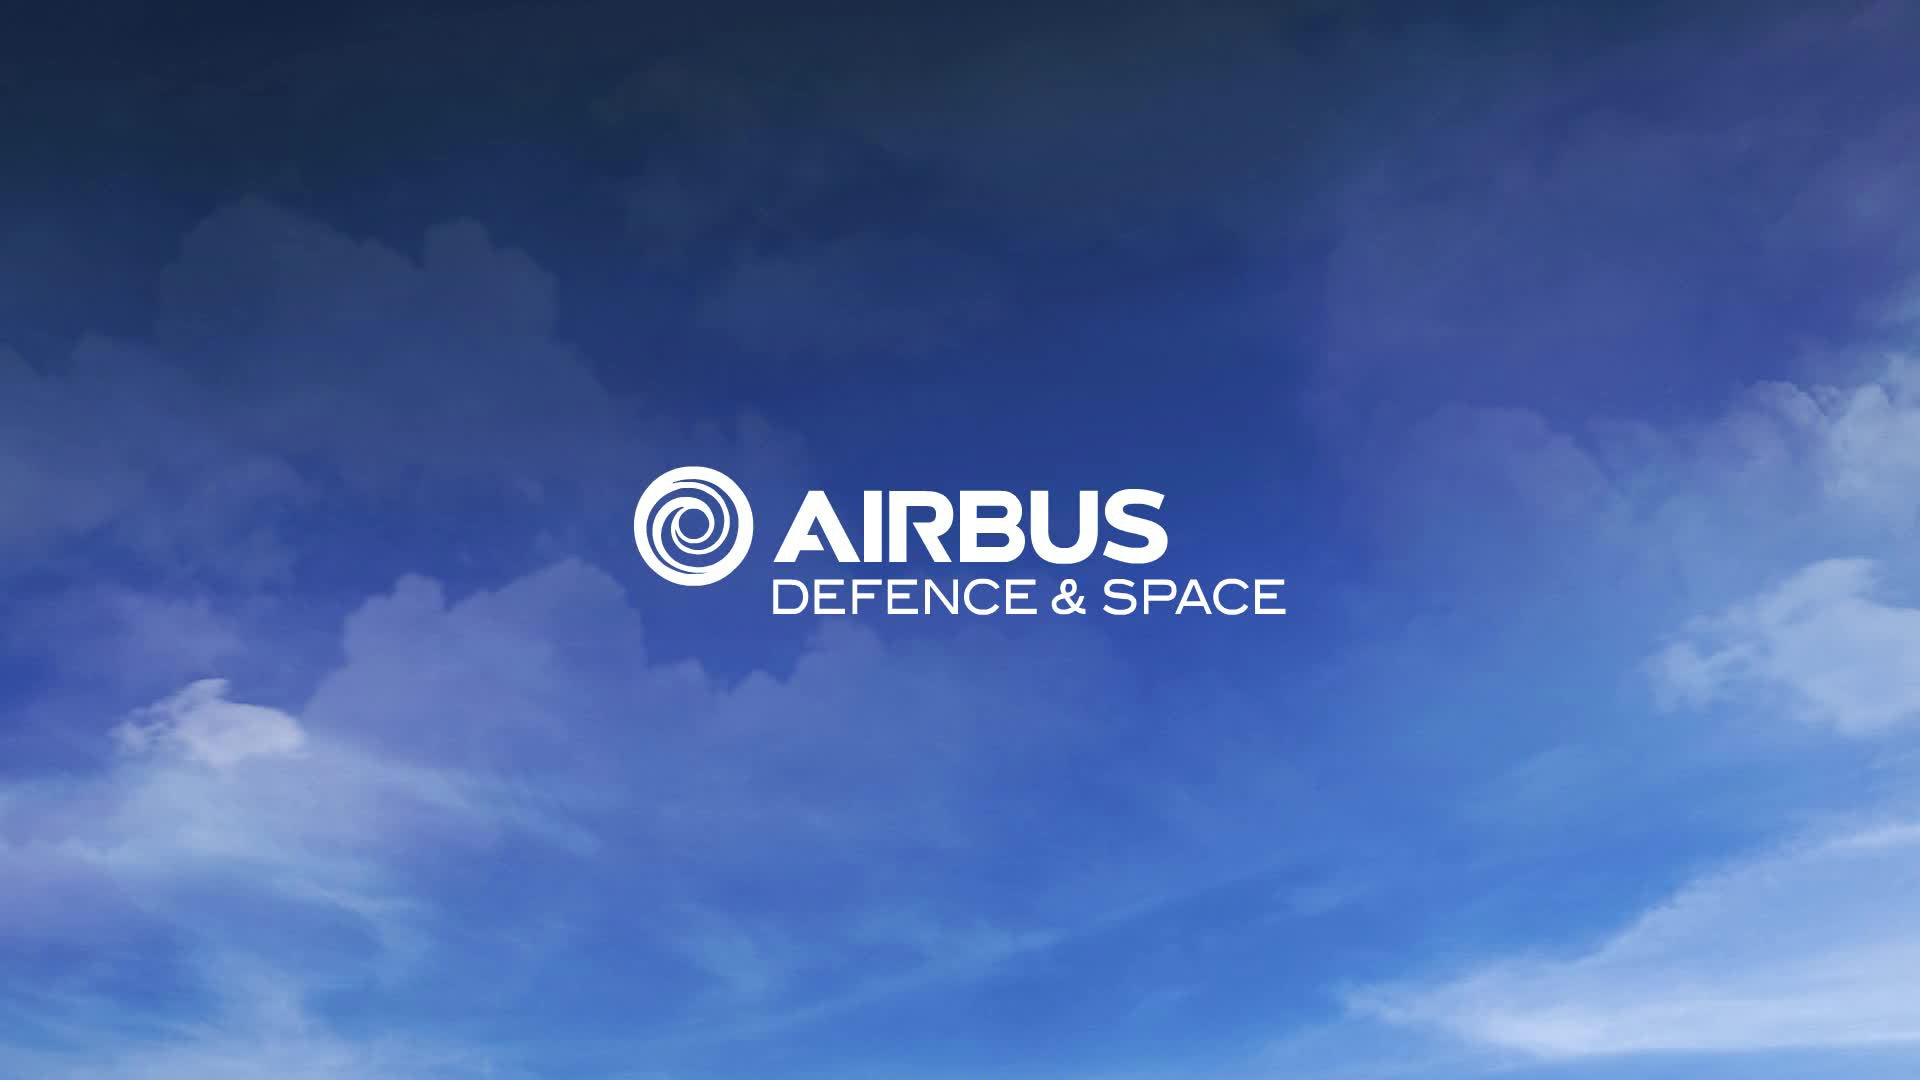 Incident response service by Airbus Defence and Space